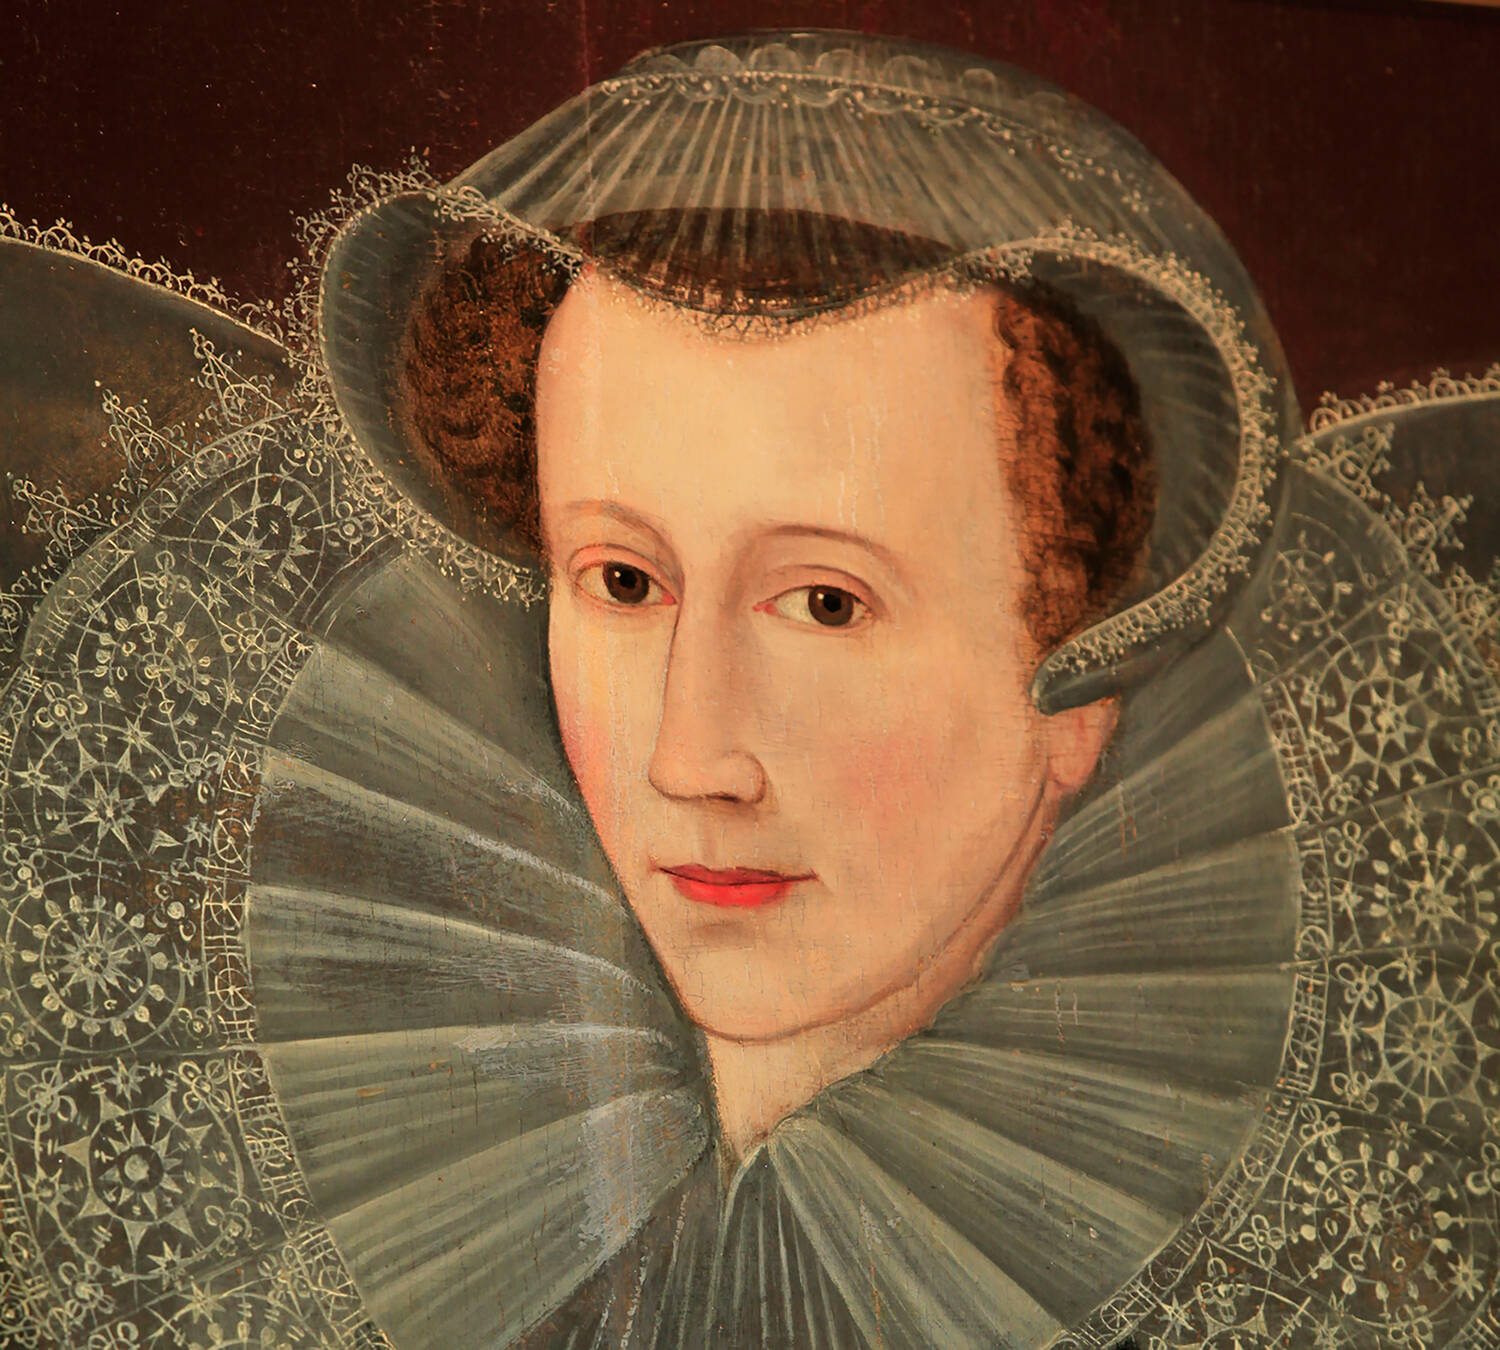 Posthumous portrait of Mary, Queen of Scots